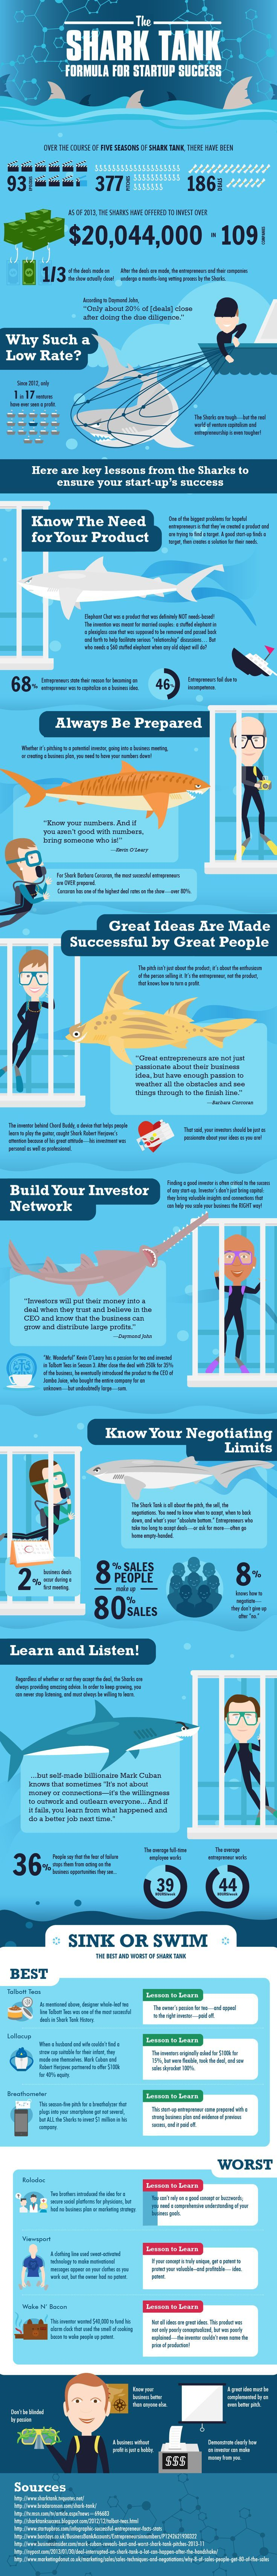 How to Surf the #SharkTank - Get Funded, Succeed as a Startup Entrepreneur #Infographic http://g-codemagazine.com/surviving-the-shark-tank-insights-for-startup-success-getting-funded